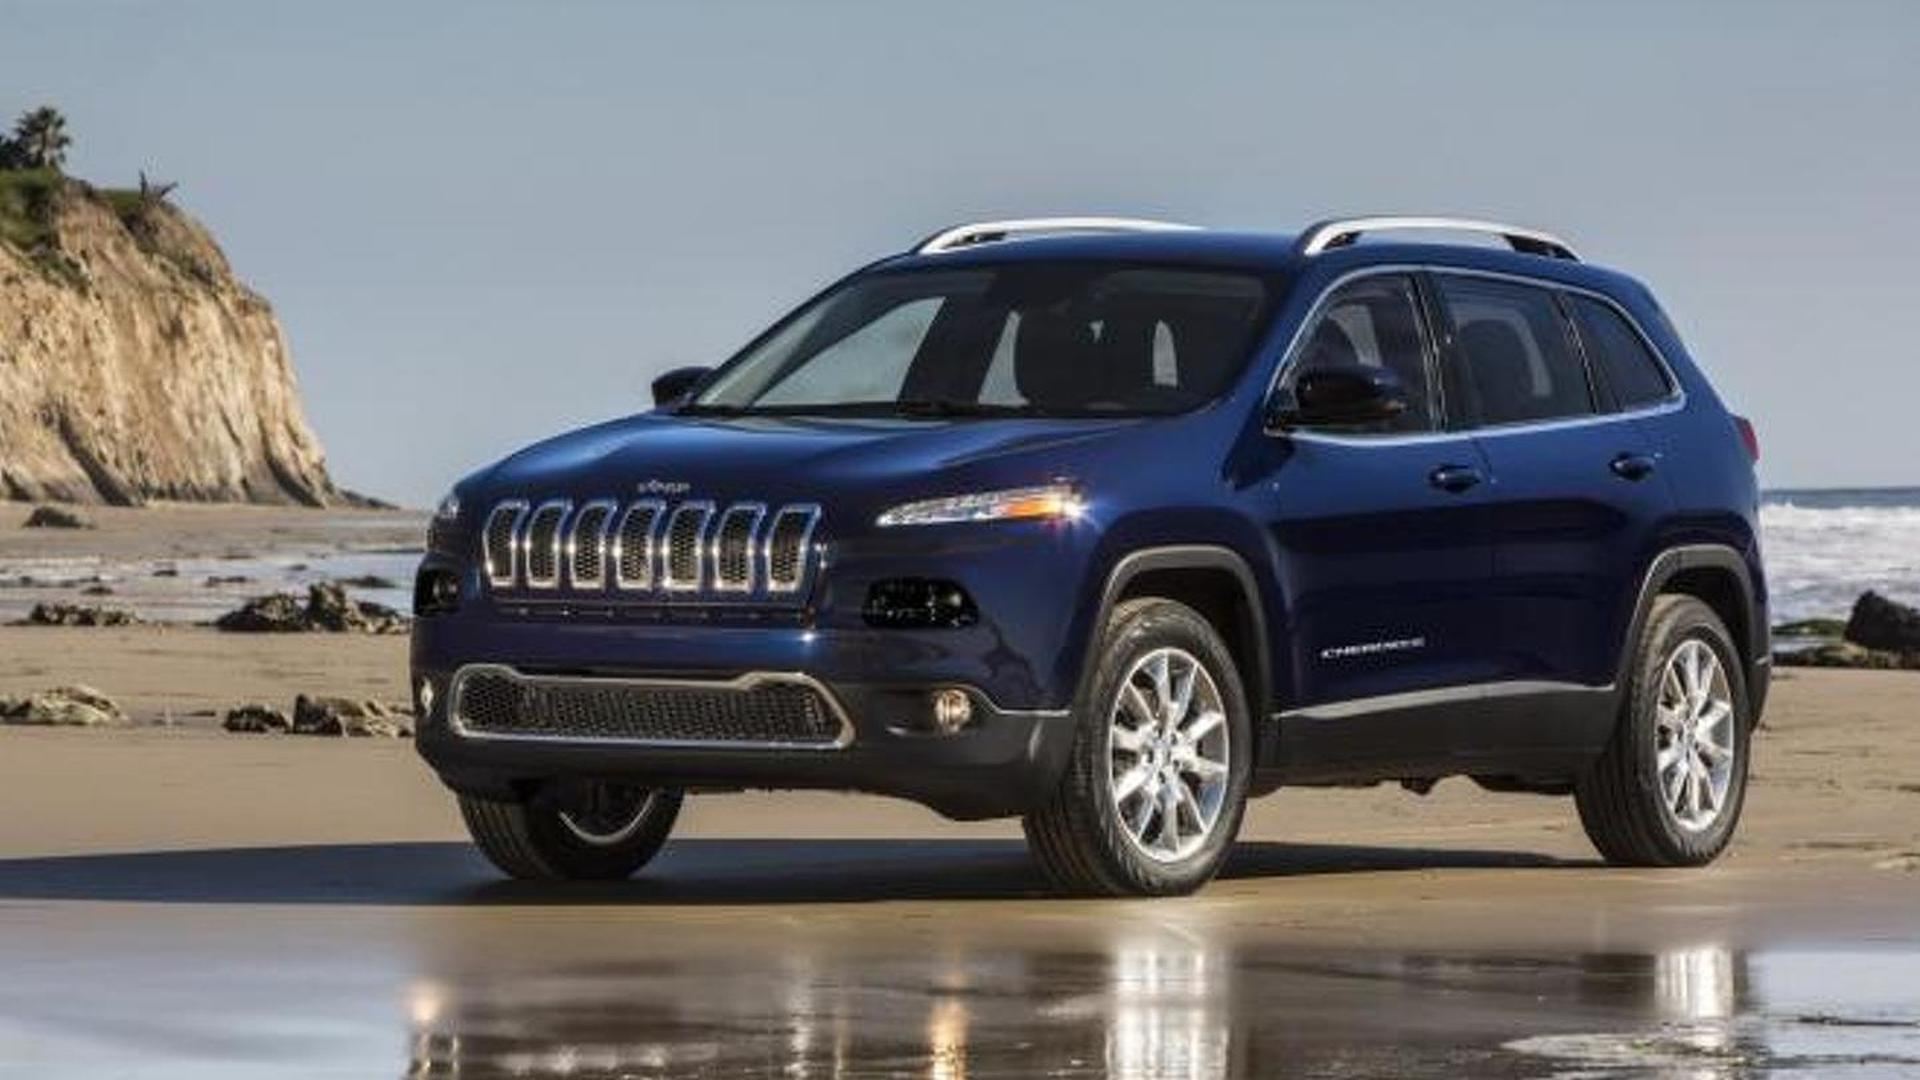 Jeep tweaking nine-speed ZF automatic transmission yet again